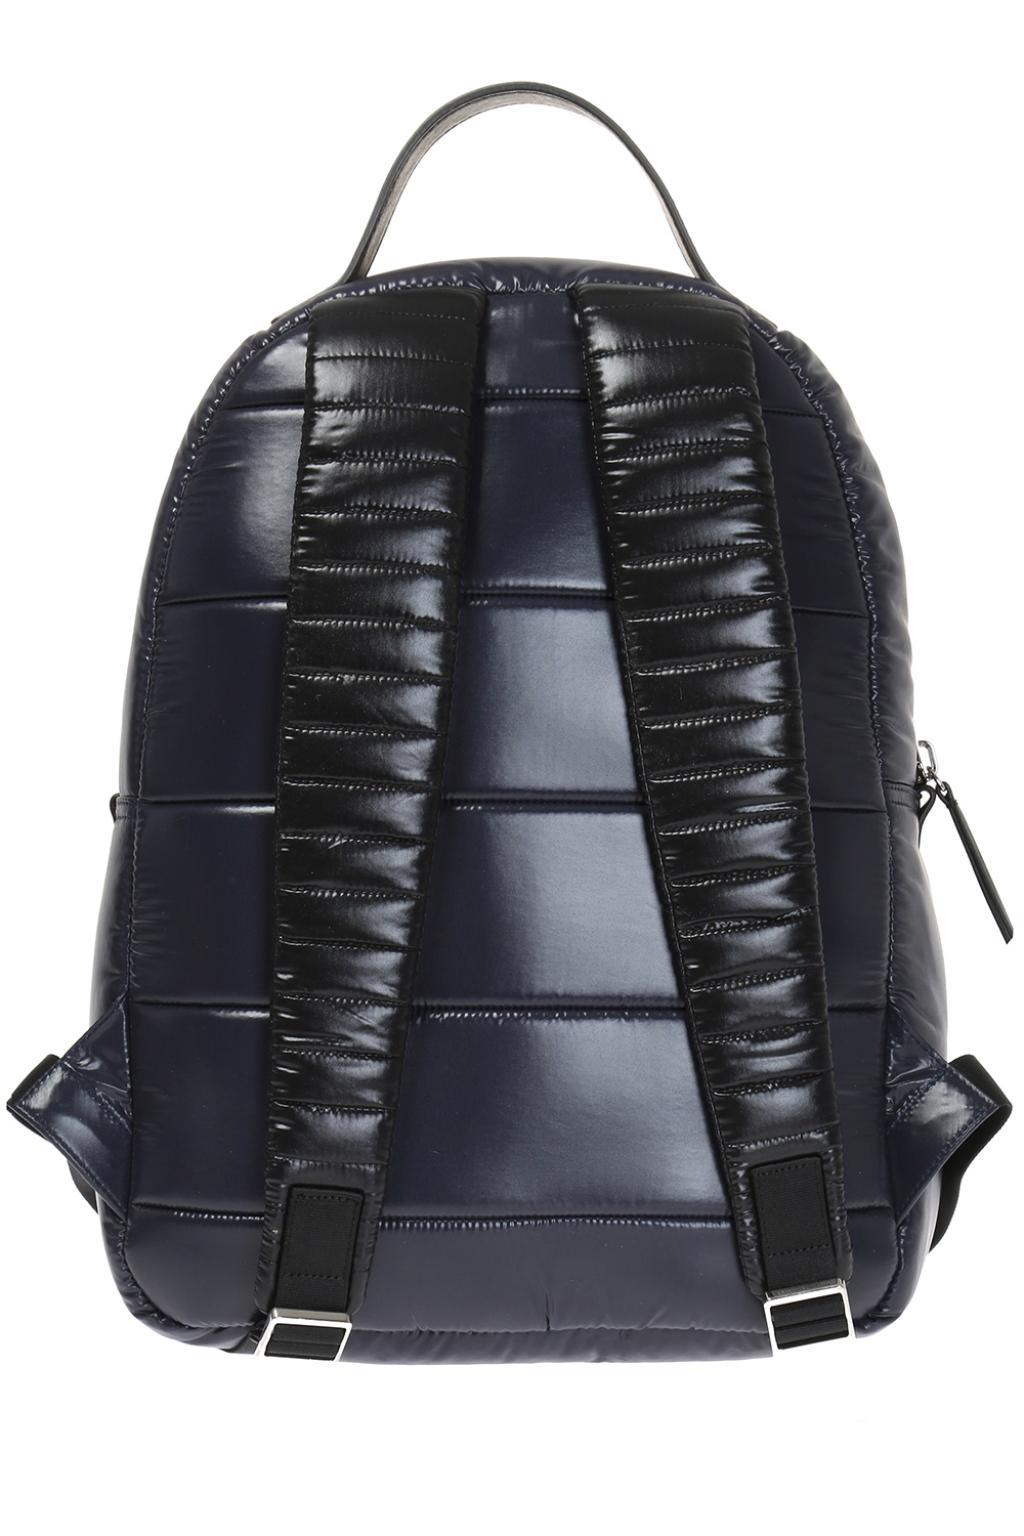 Moncler Synthetic 'new George' Backpack in Navy Blue (Blue) for Men